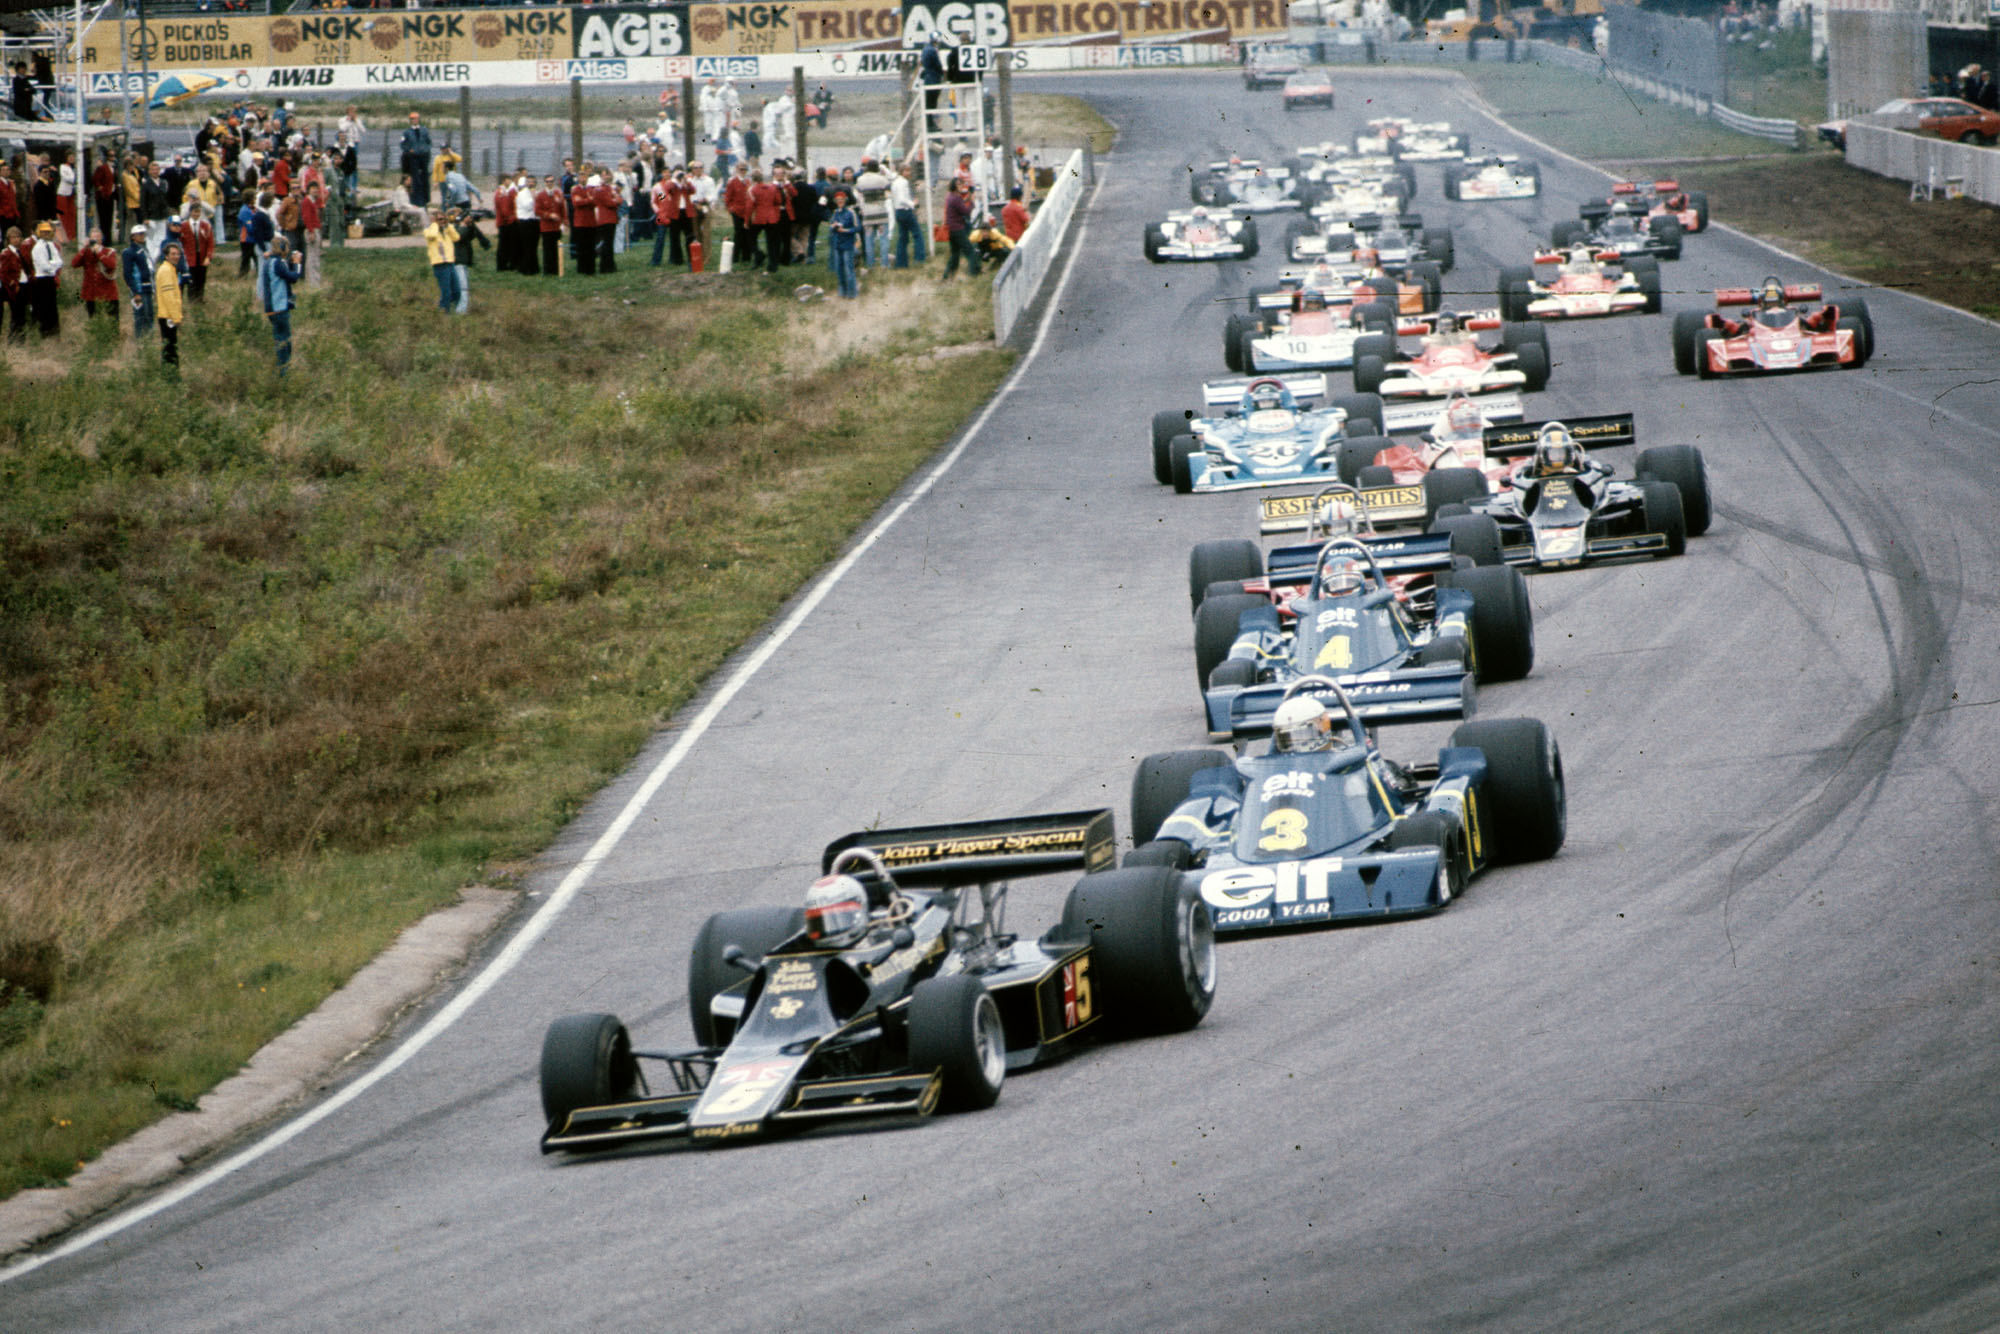 Mario Andretti (Lotus) leads at the start of the 1976 Swedish Grand Prix.